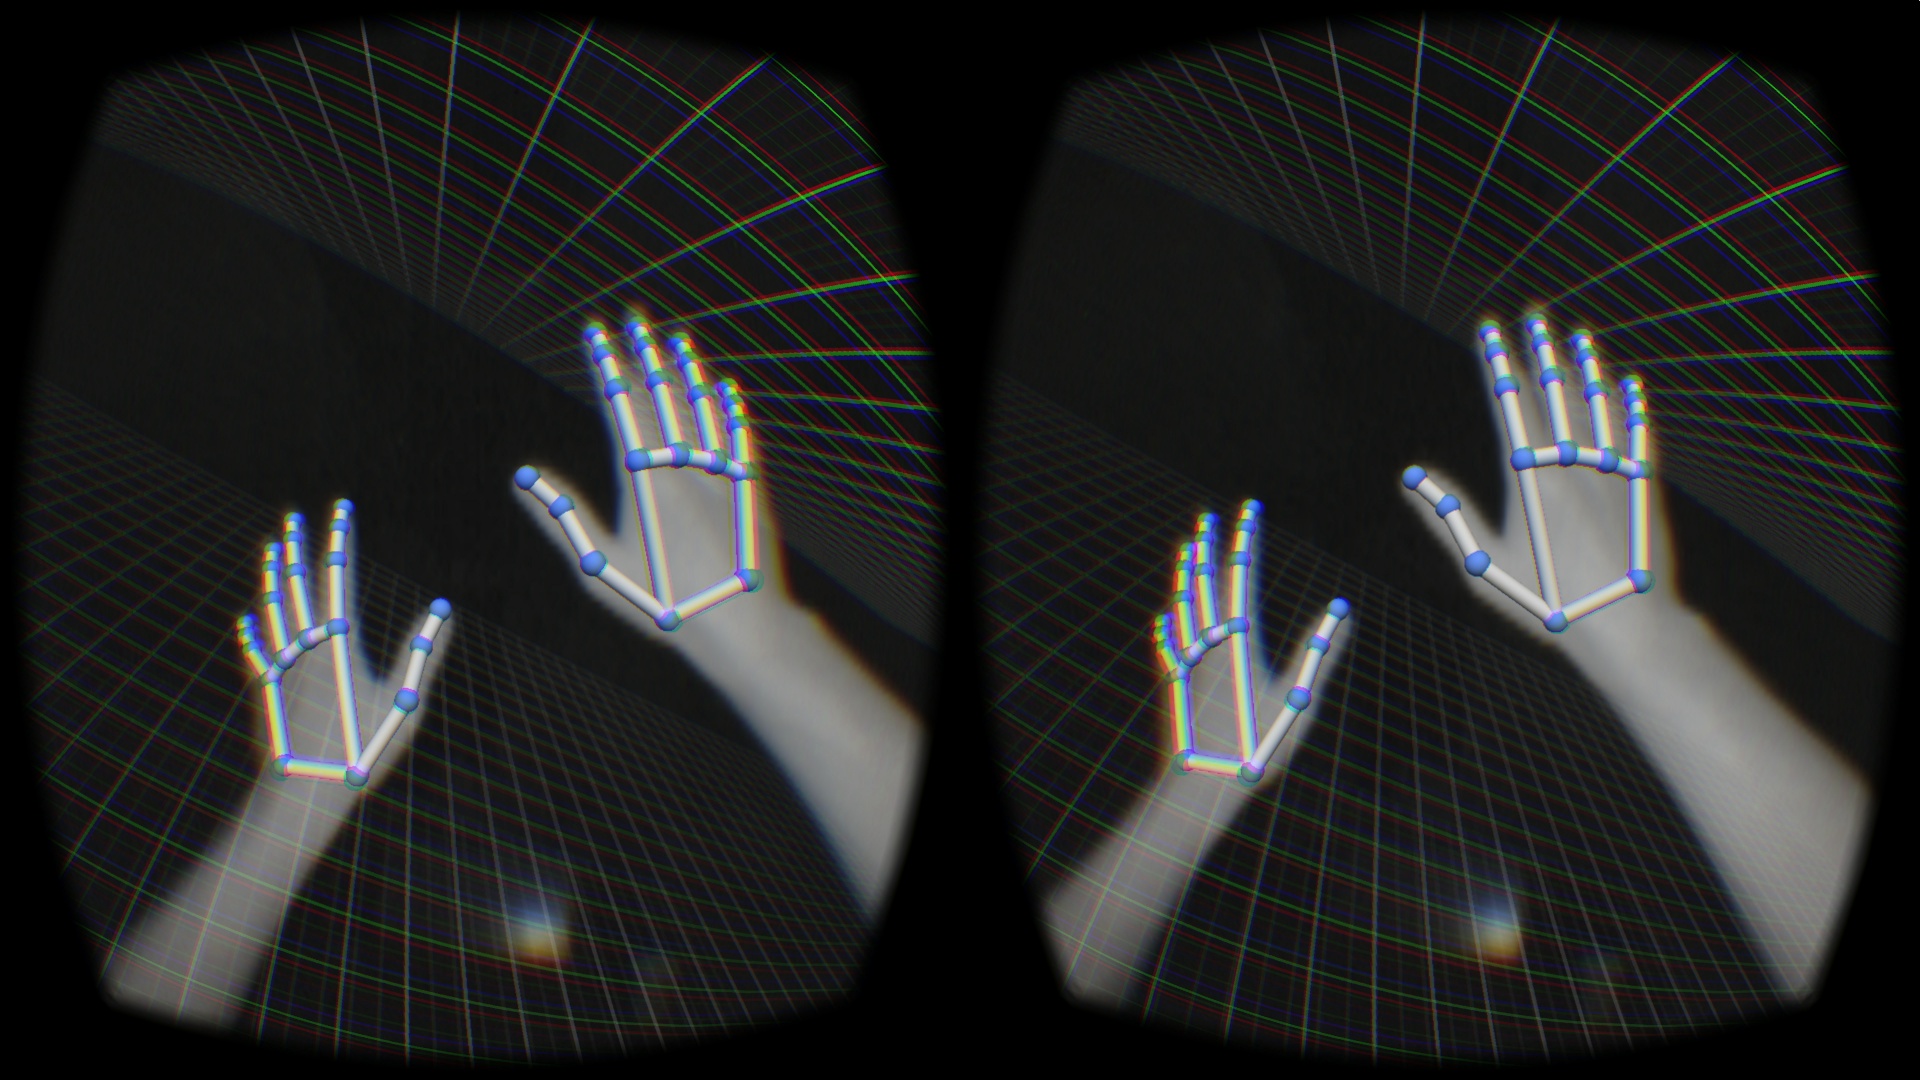 The Leap Motion already tracks hands very well, and the new SDK lets the Leap keep working while attached to your face.